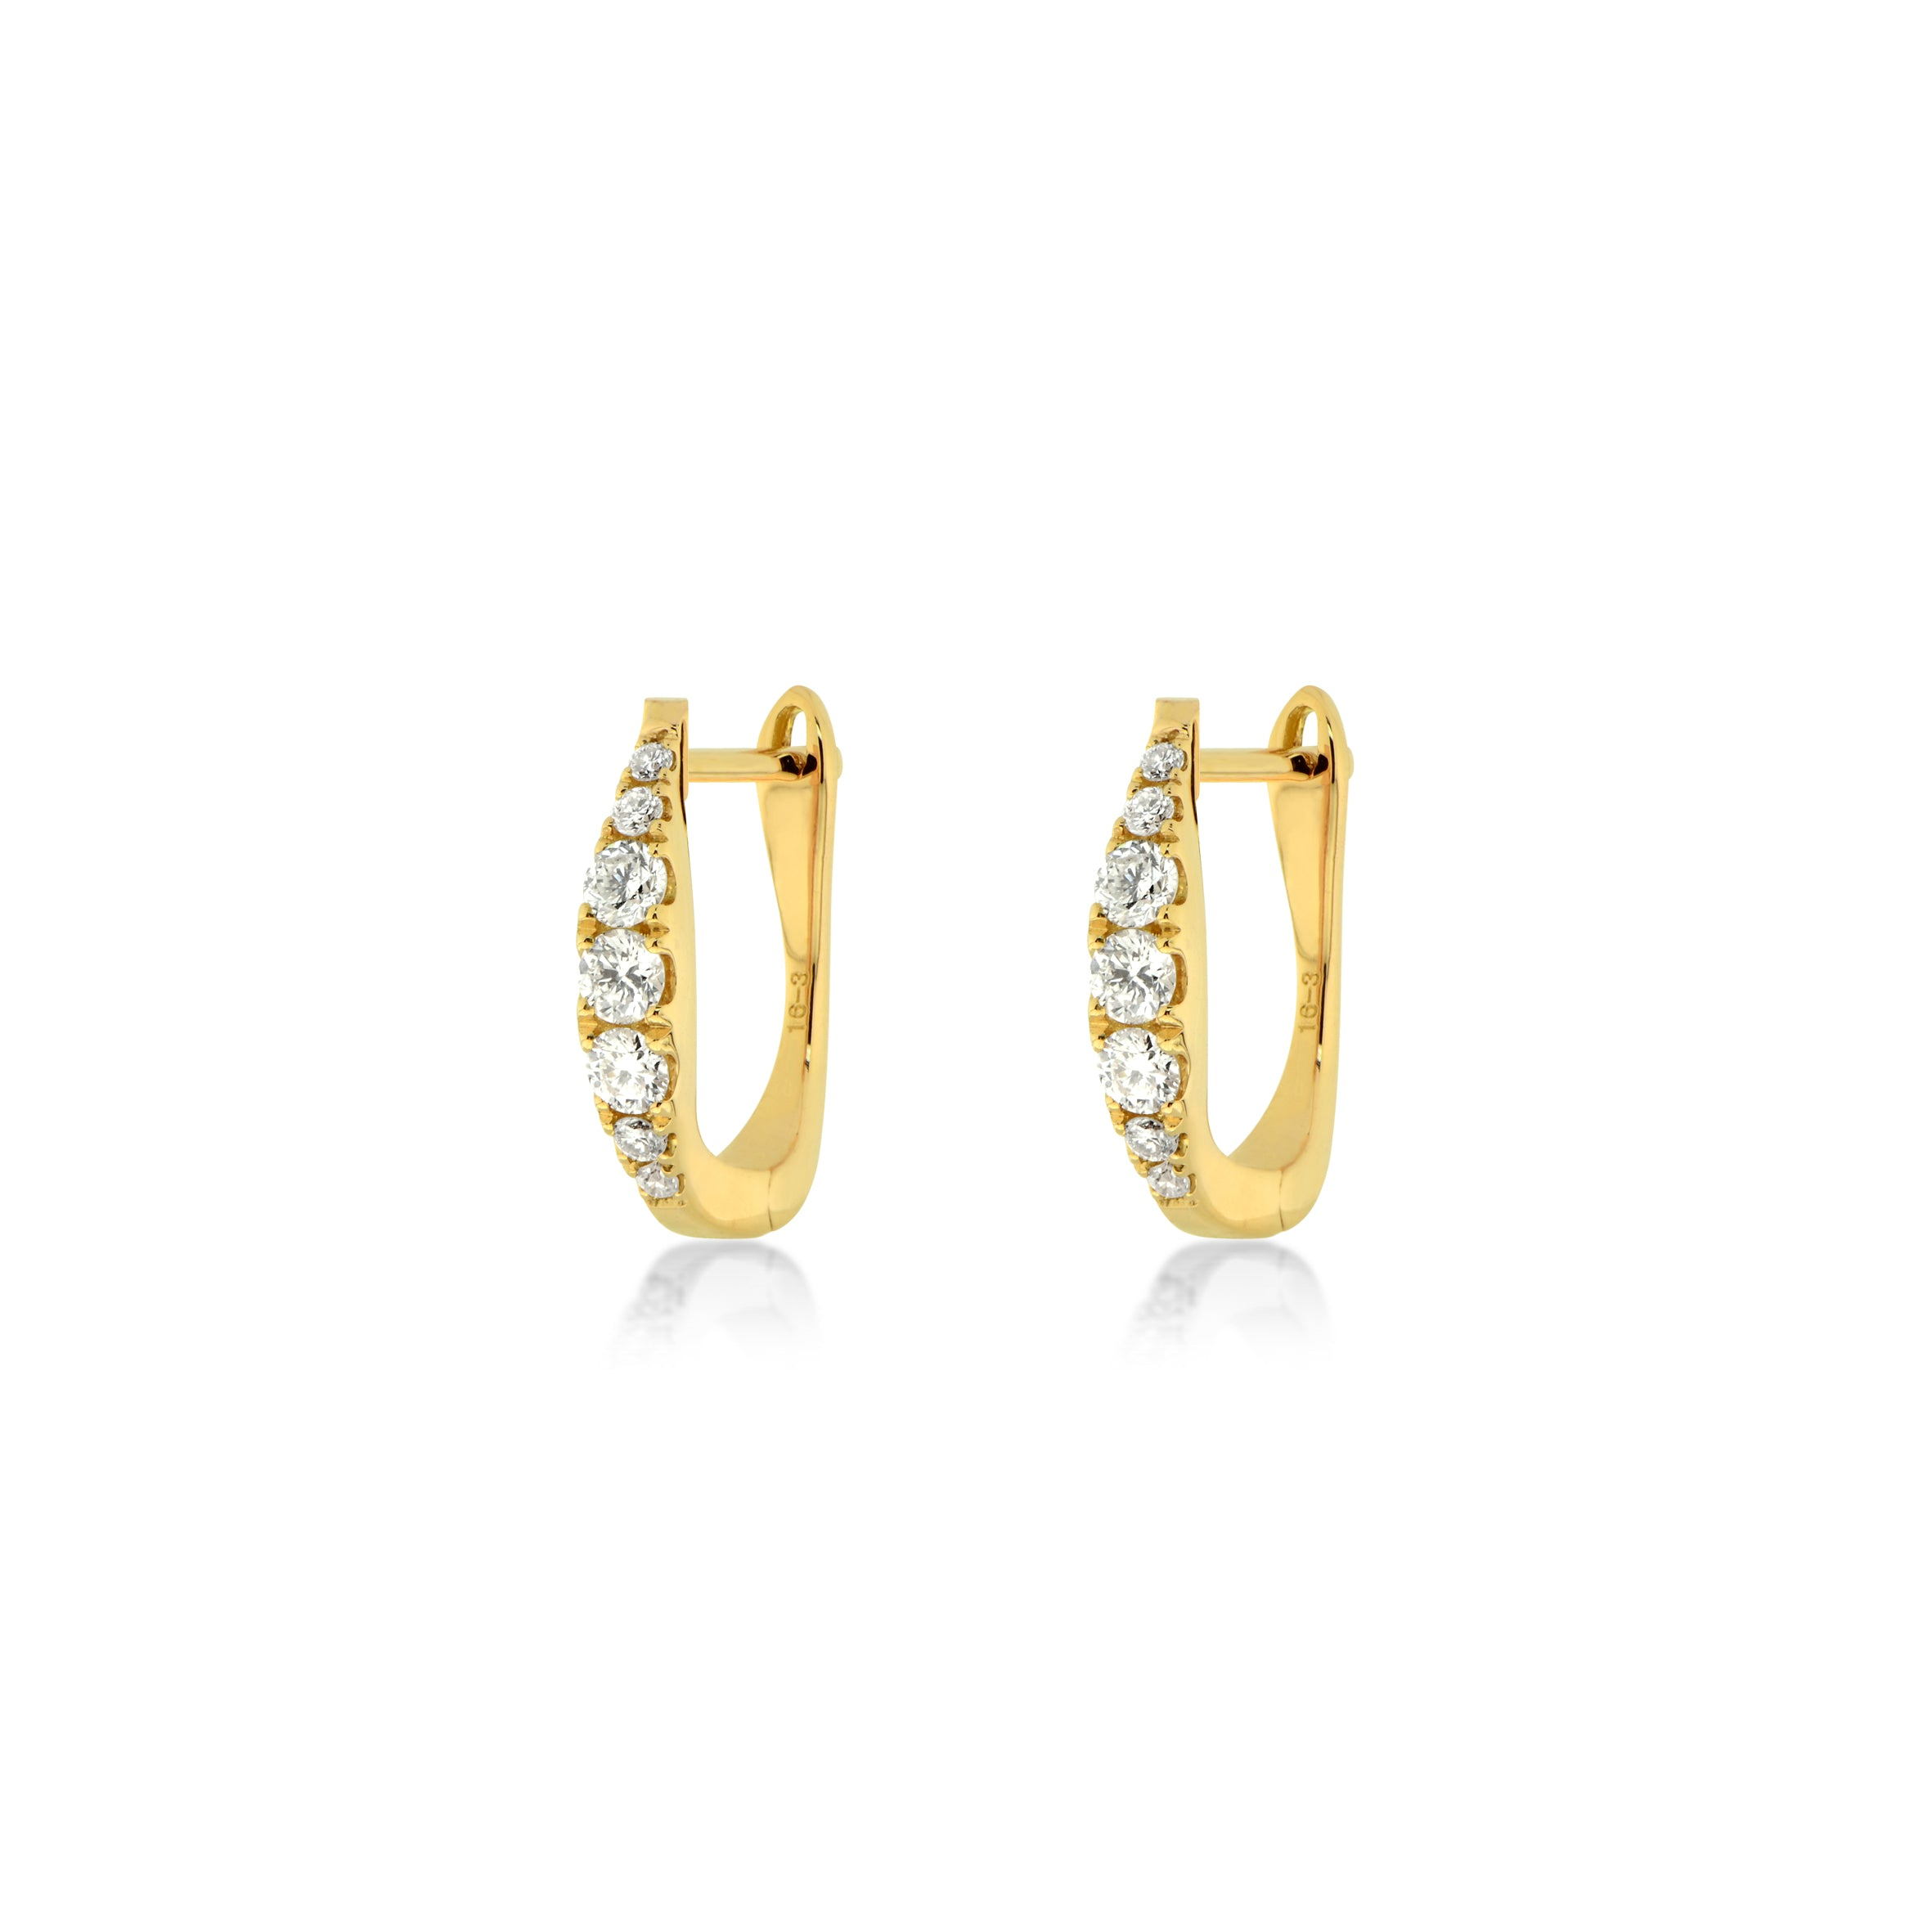 OURIRE Earrings